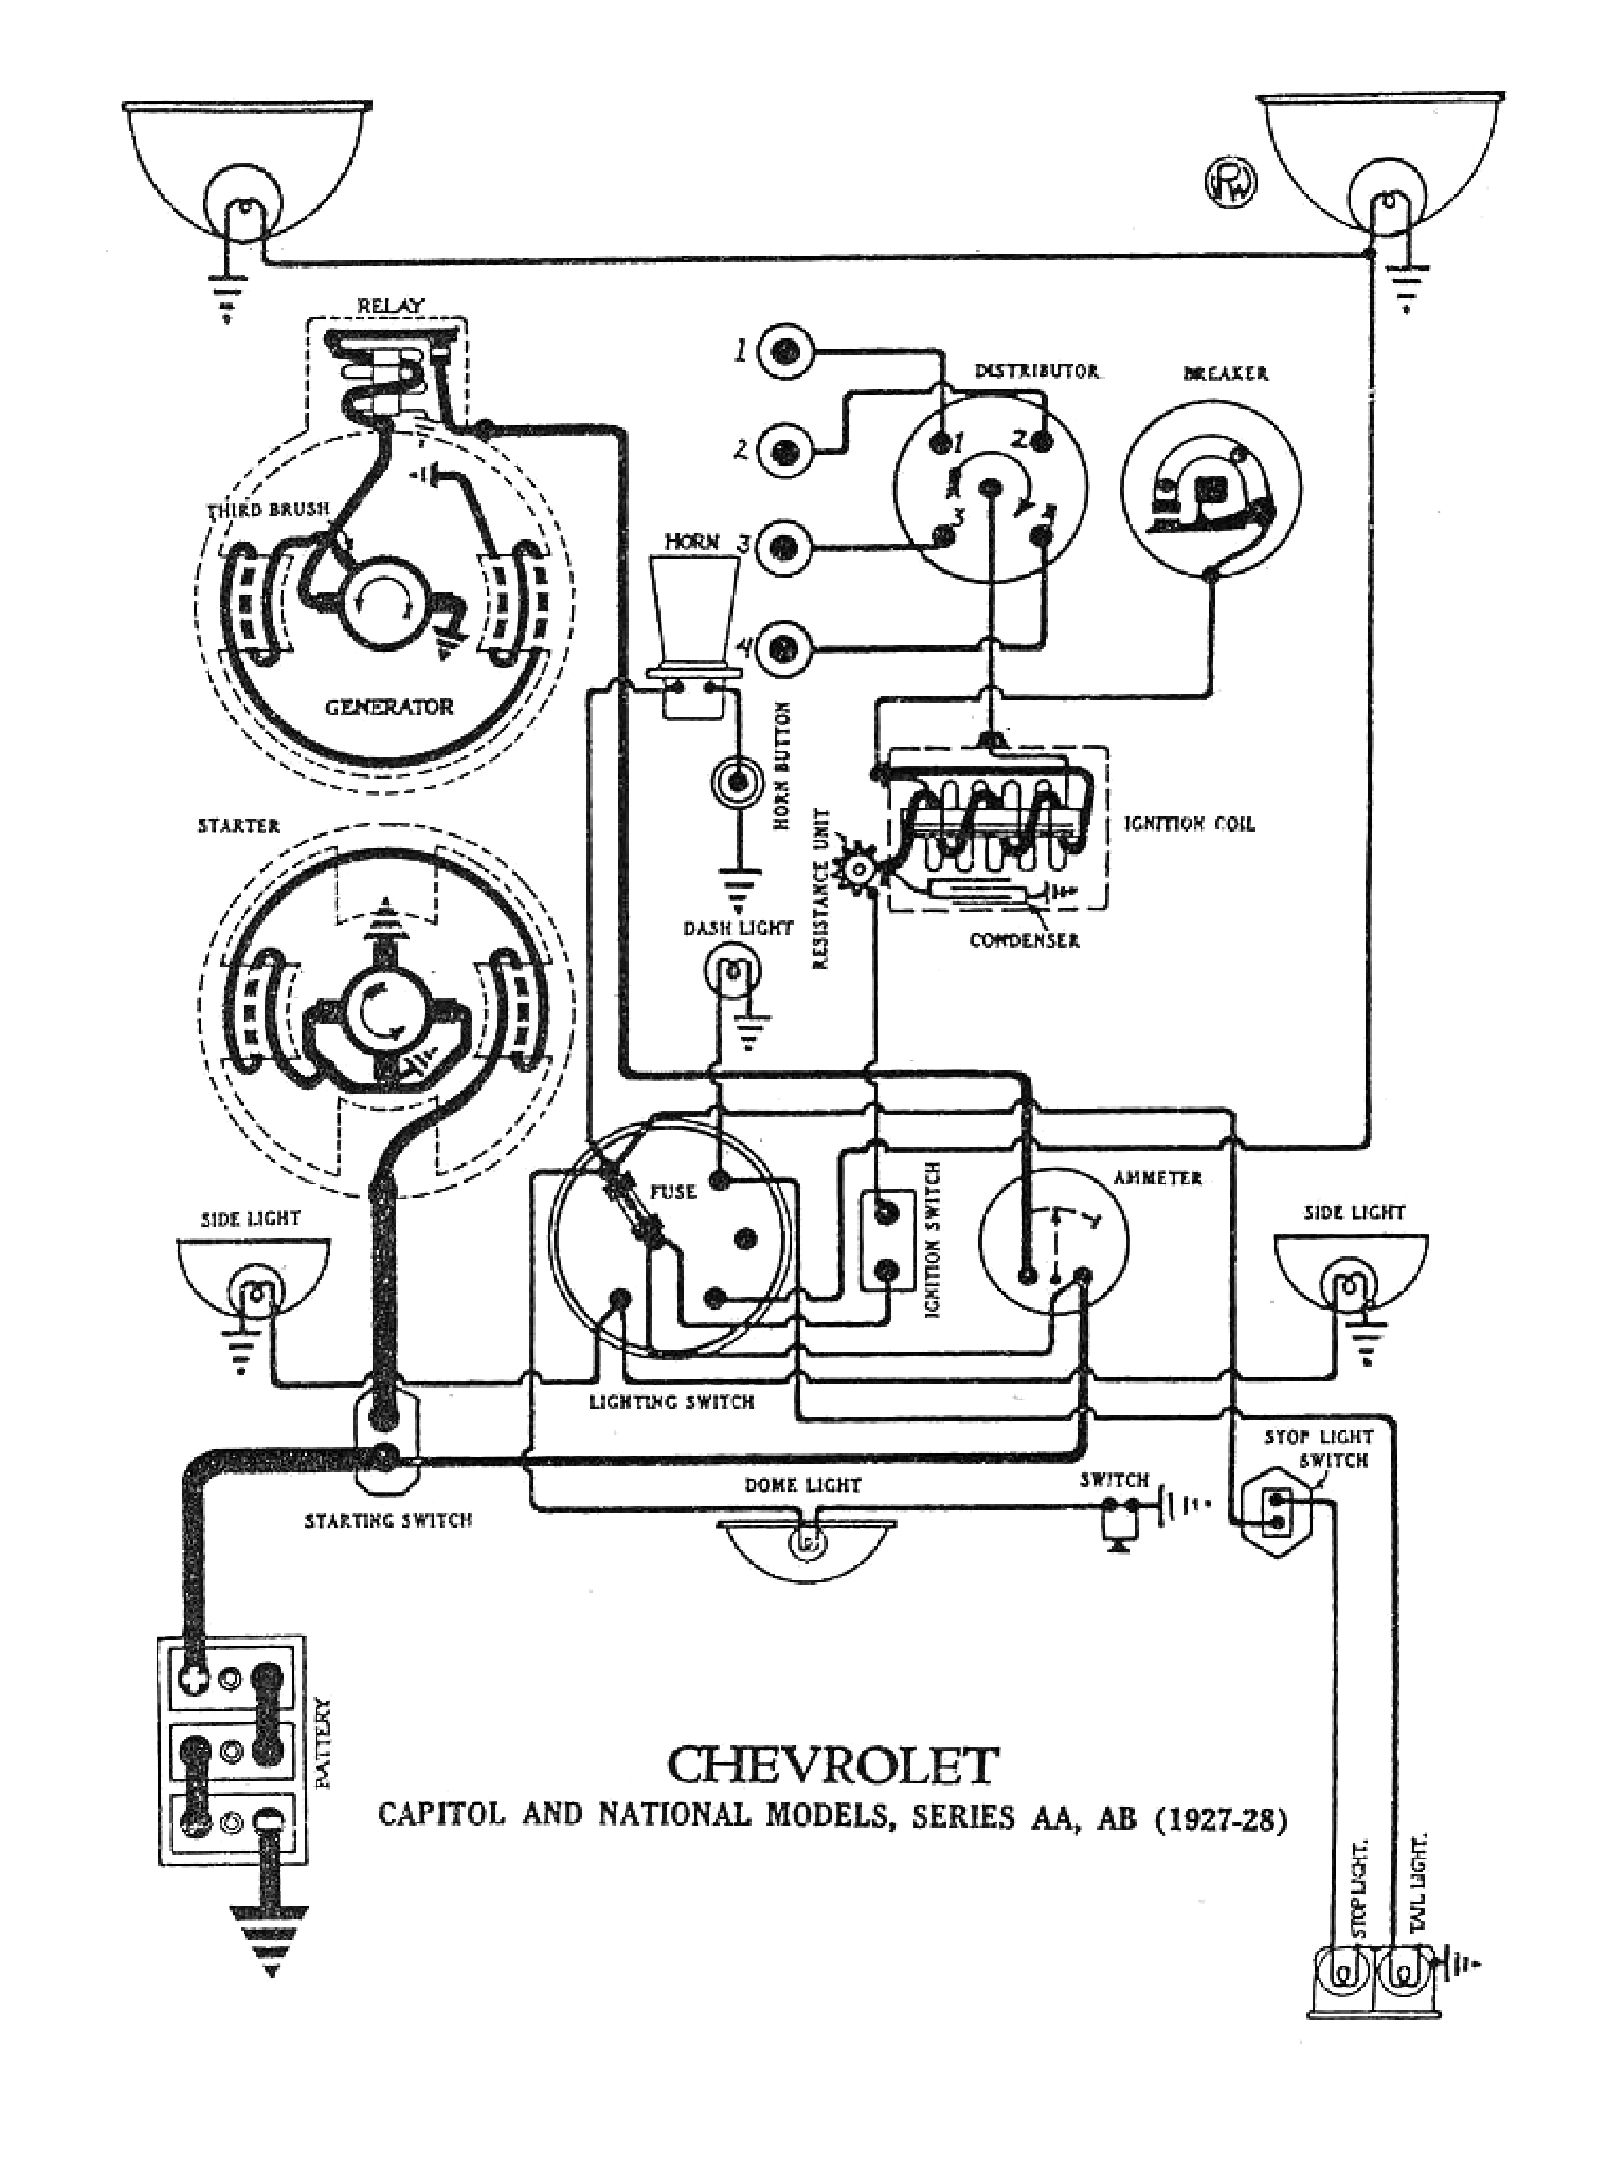 2728wiring chevy wiring diagrams 1972 Buick Skylark at reclaimingppi.co